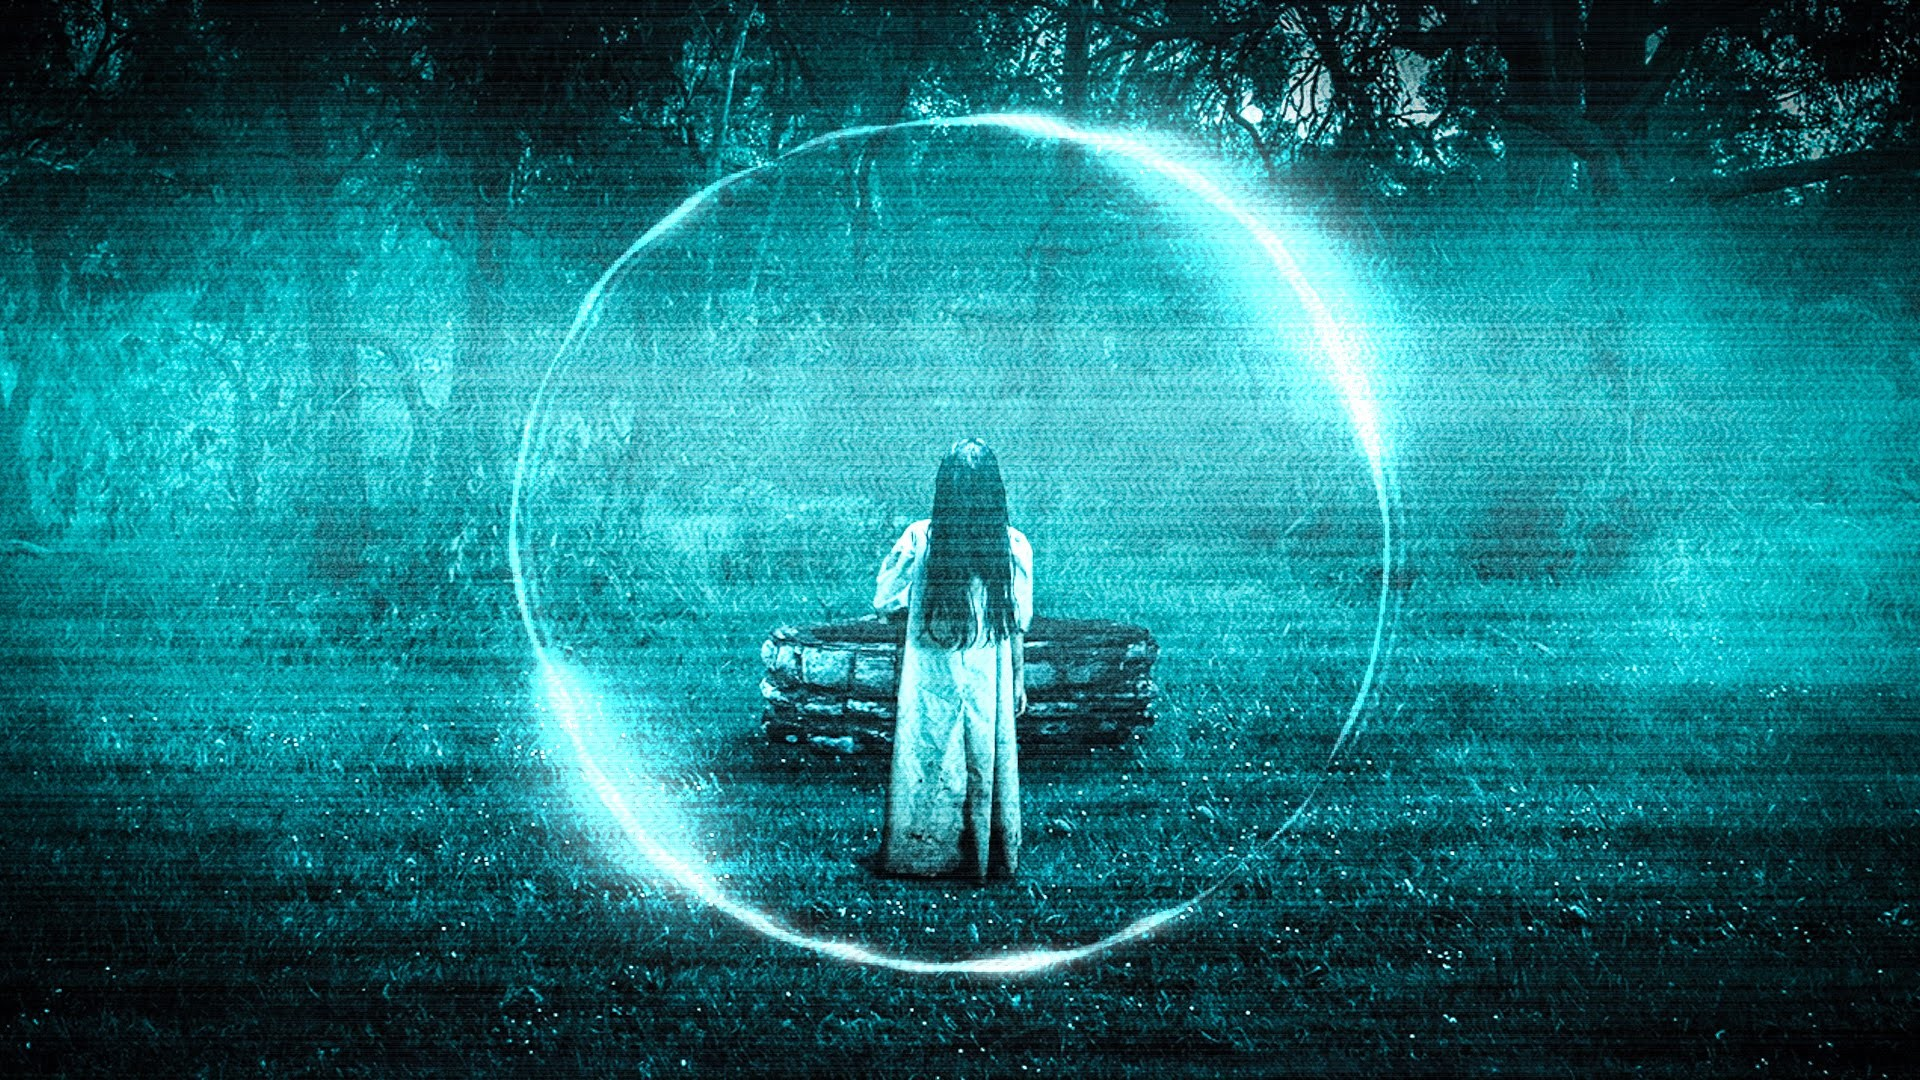 1. 'The Ring' (2002)